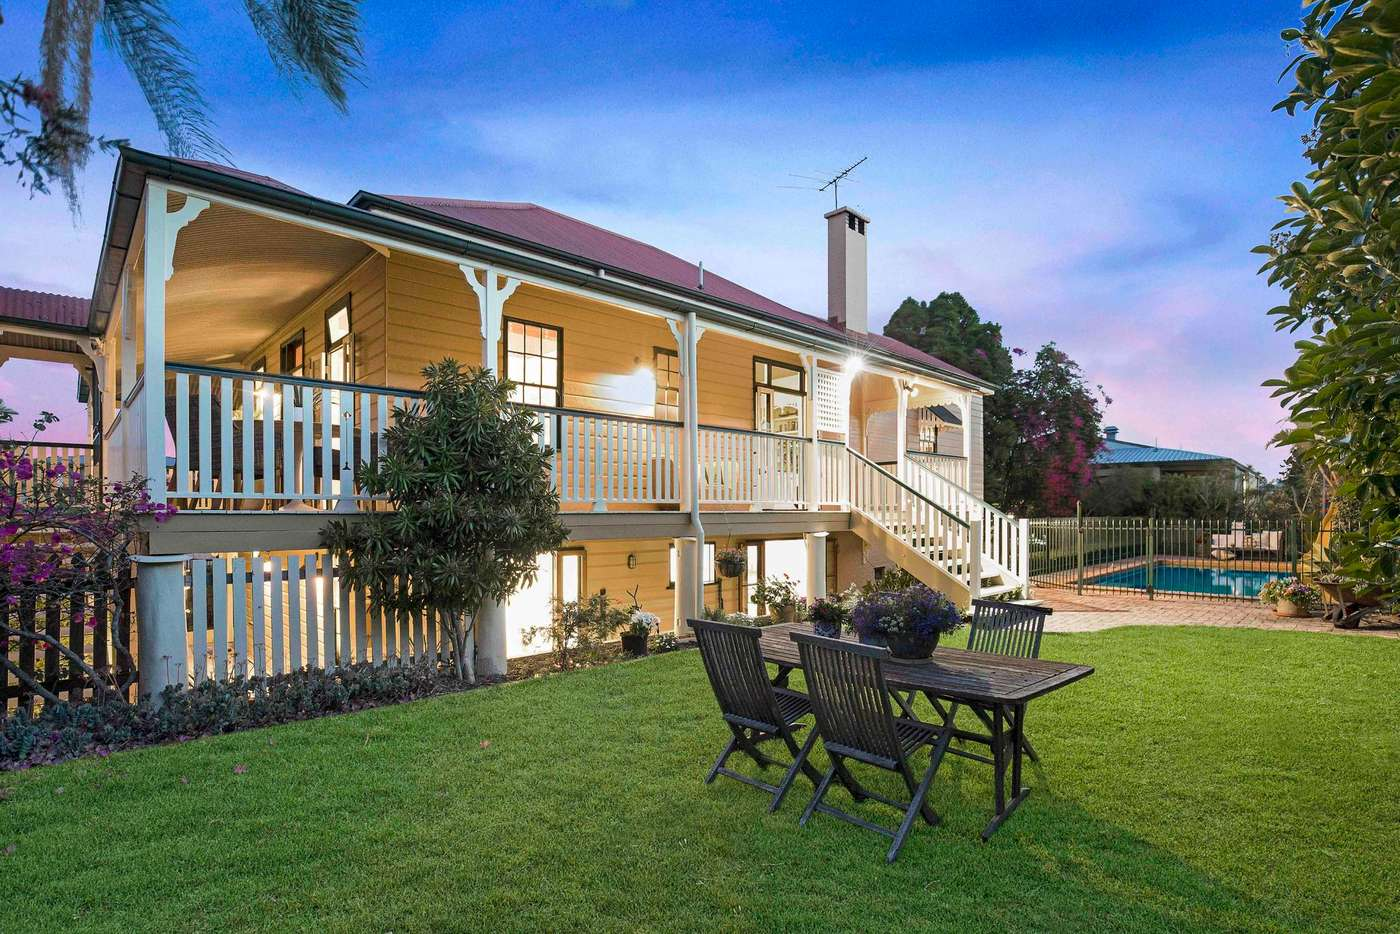 Main view of Homely house listing, 44 Wool Street, Toowong QLD 4066